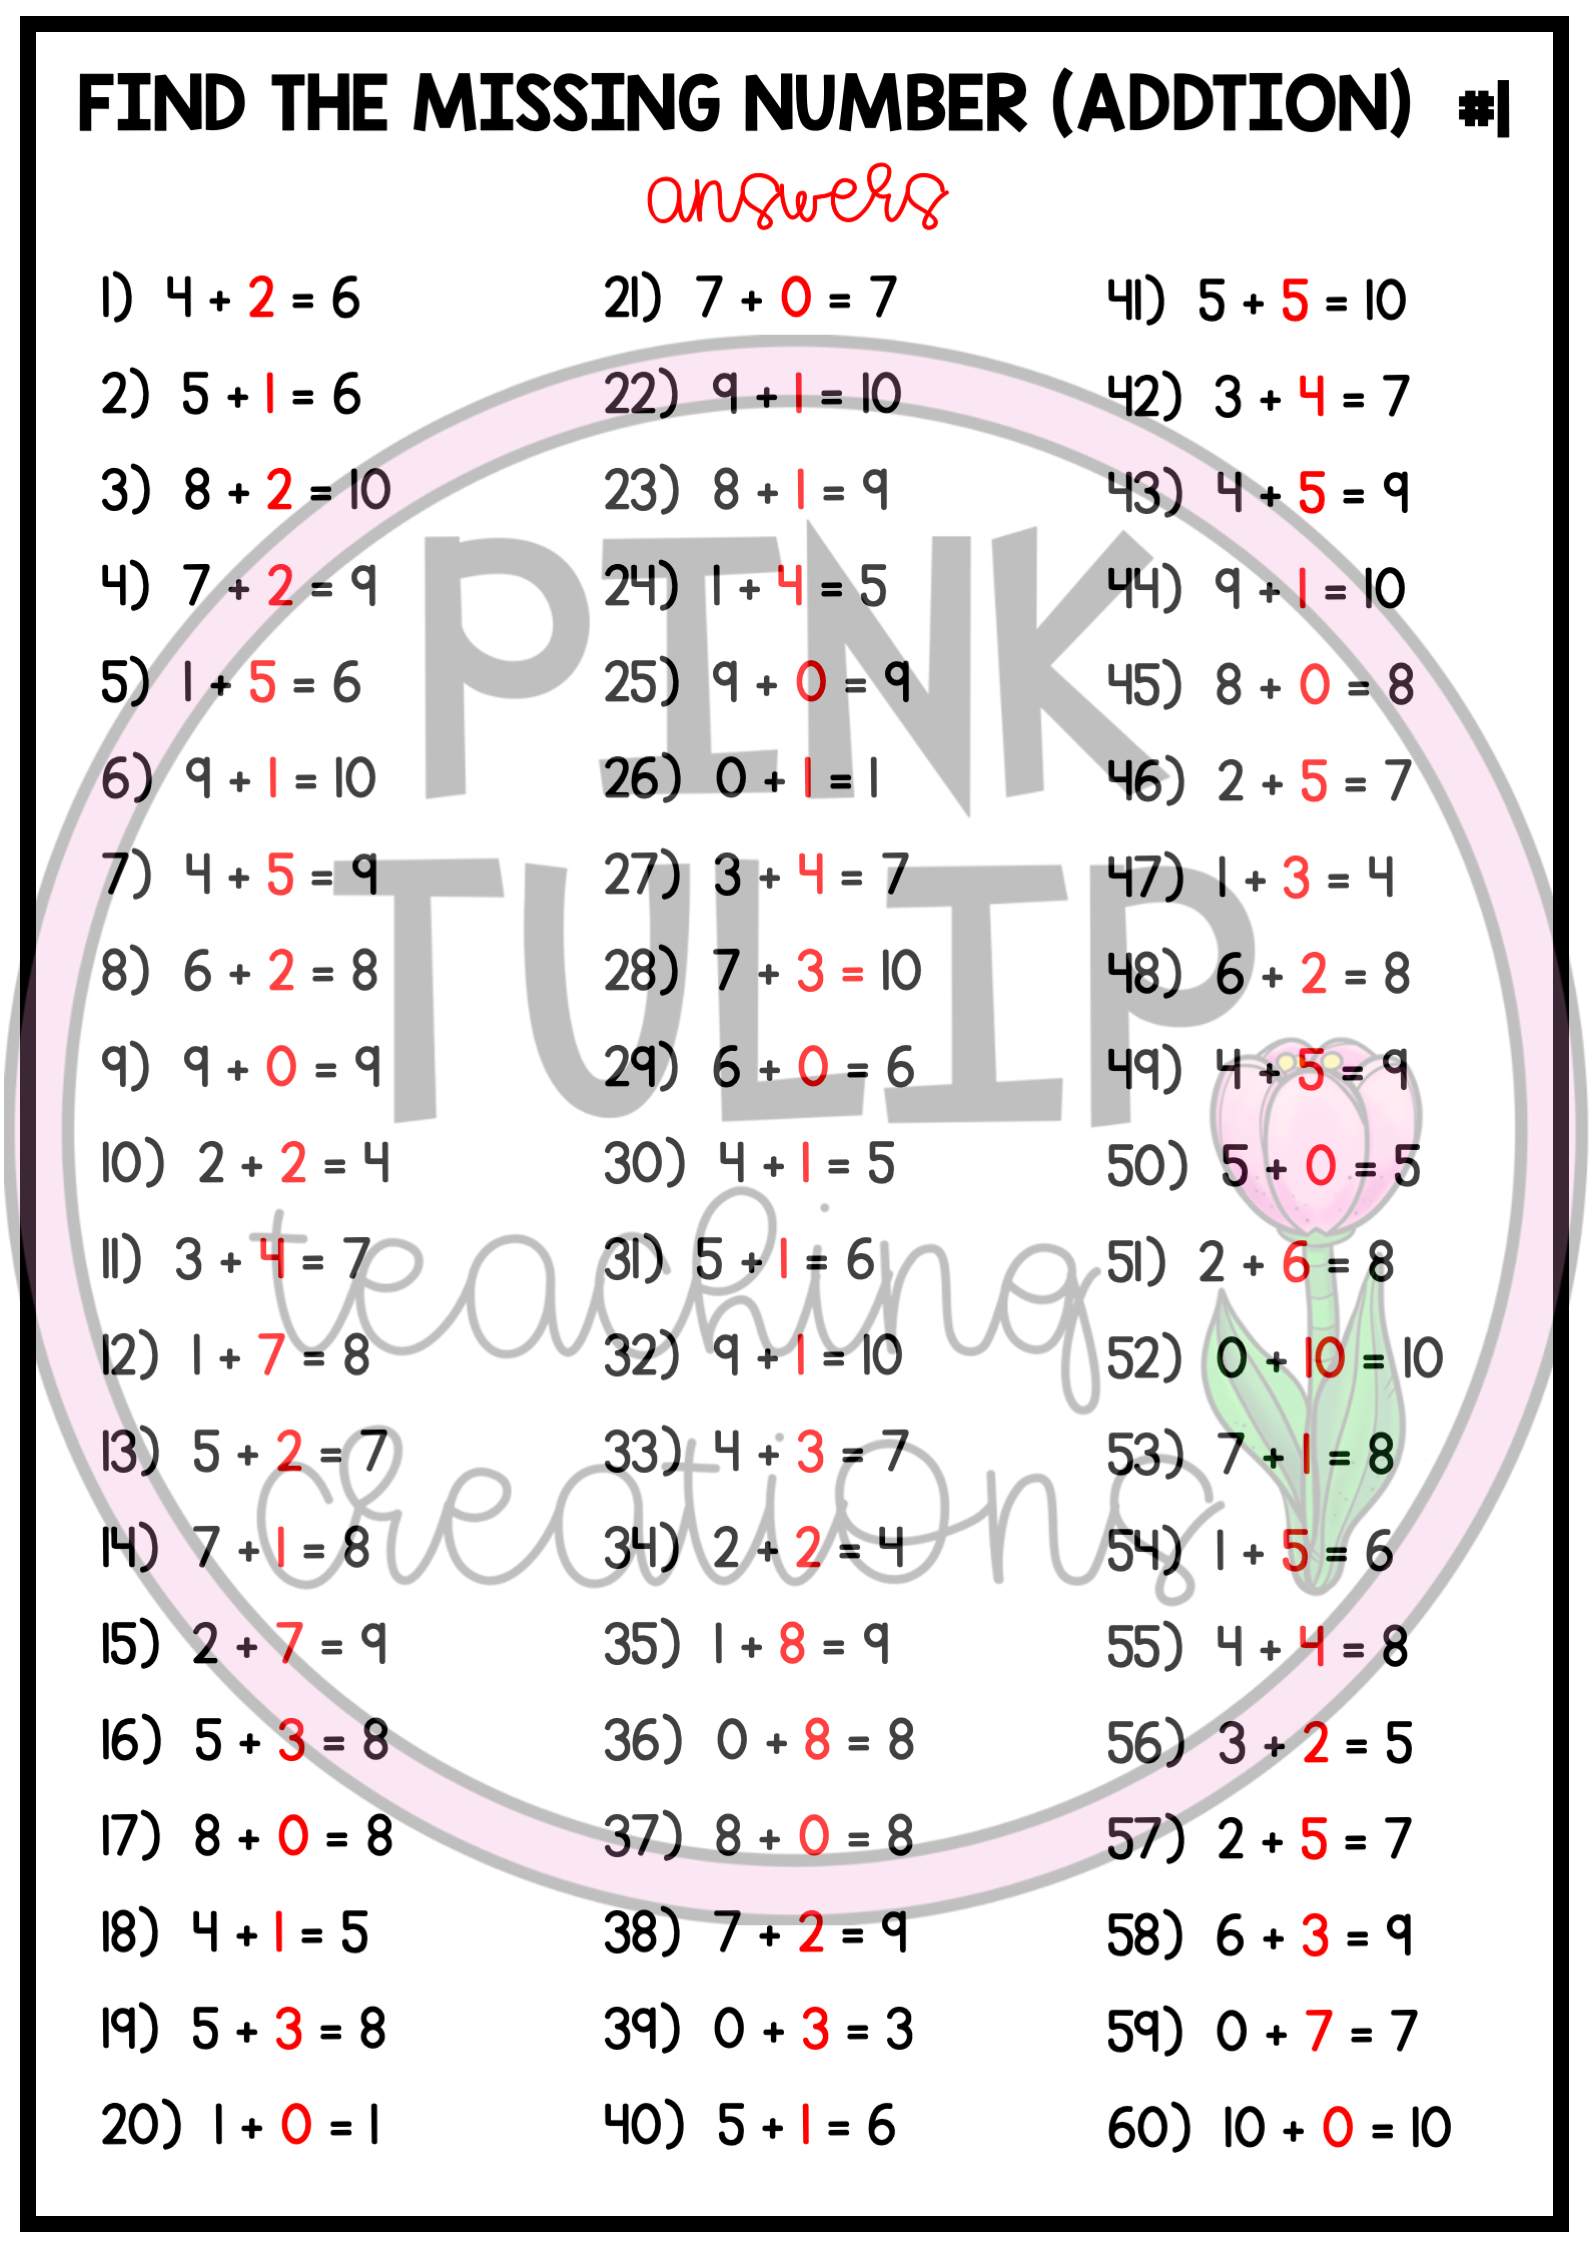 Missing Number Up To 10 Addition Worksheets Mental Math Or Early Finisher Mental Math Addition Worksheets Math Curriculum [ 2249 x 1589 Pixel ]